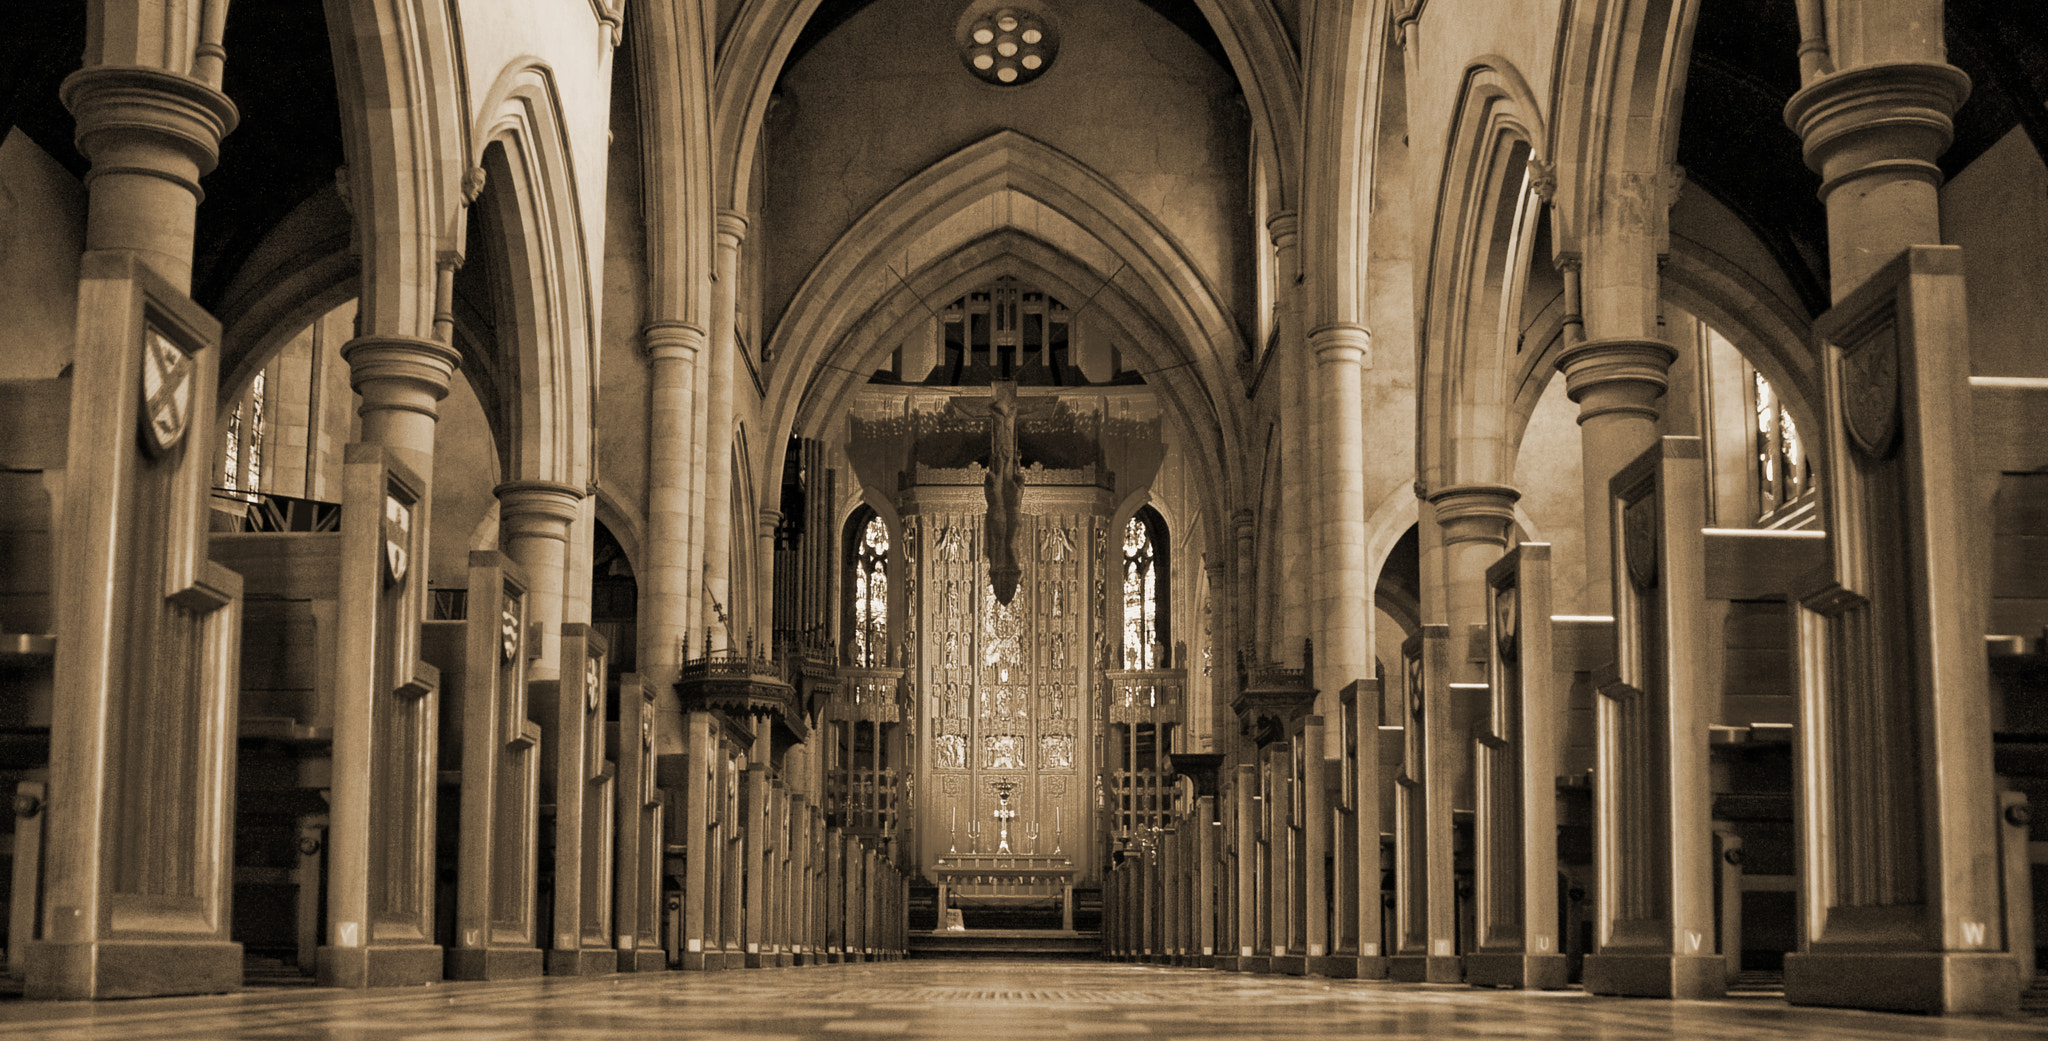 Photograph Cathedral aisle by Andrew Dickman on 500px